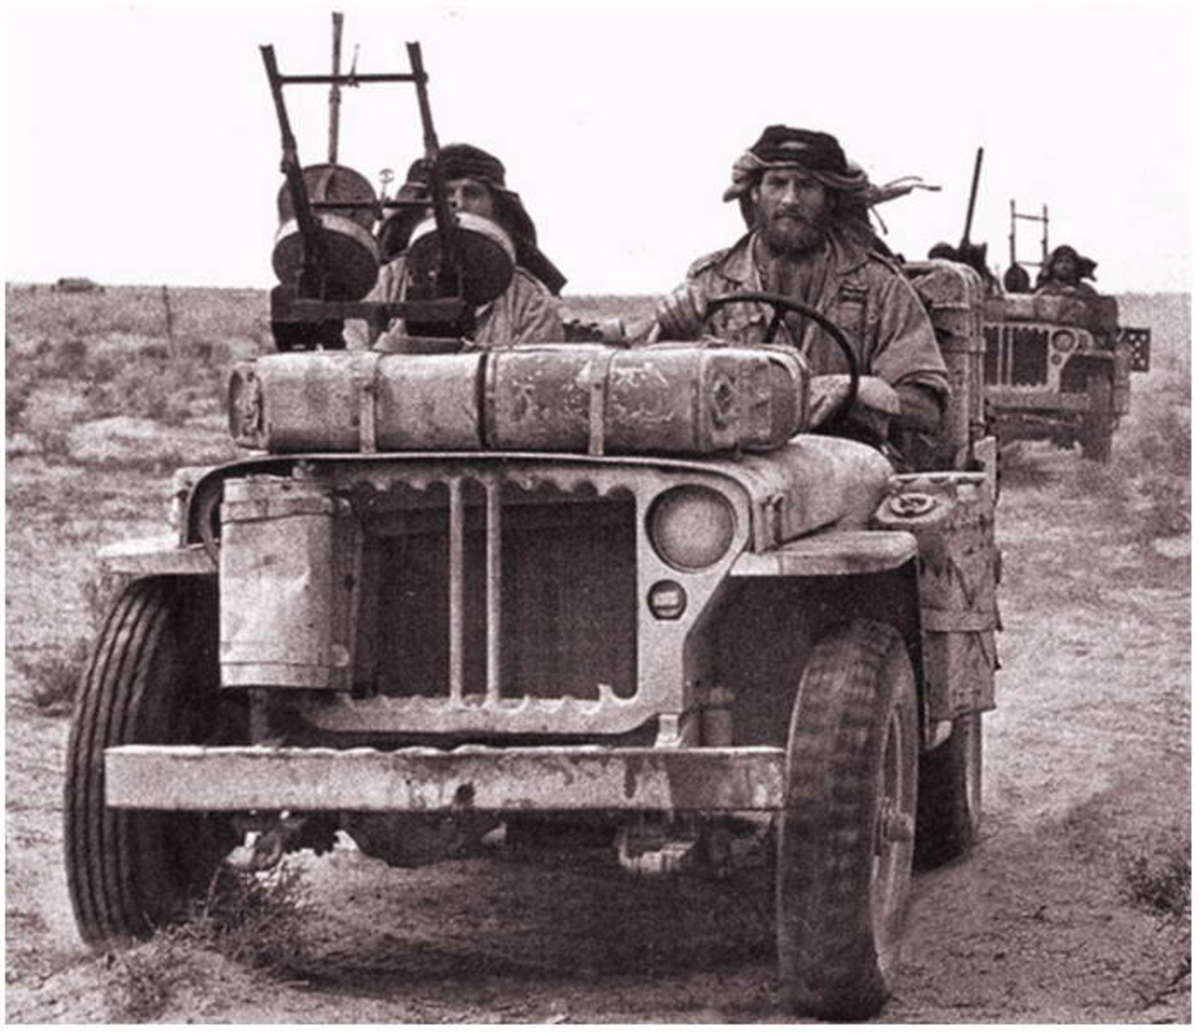 Men of 'L' Detachment SAS aboard their jeeps - maximum disruption at minimum cost was the aim; Hitler and many of his senior commanders held a pathological hatred of all commando forces